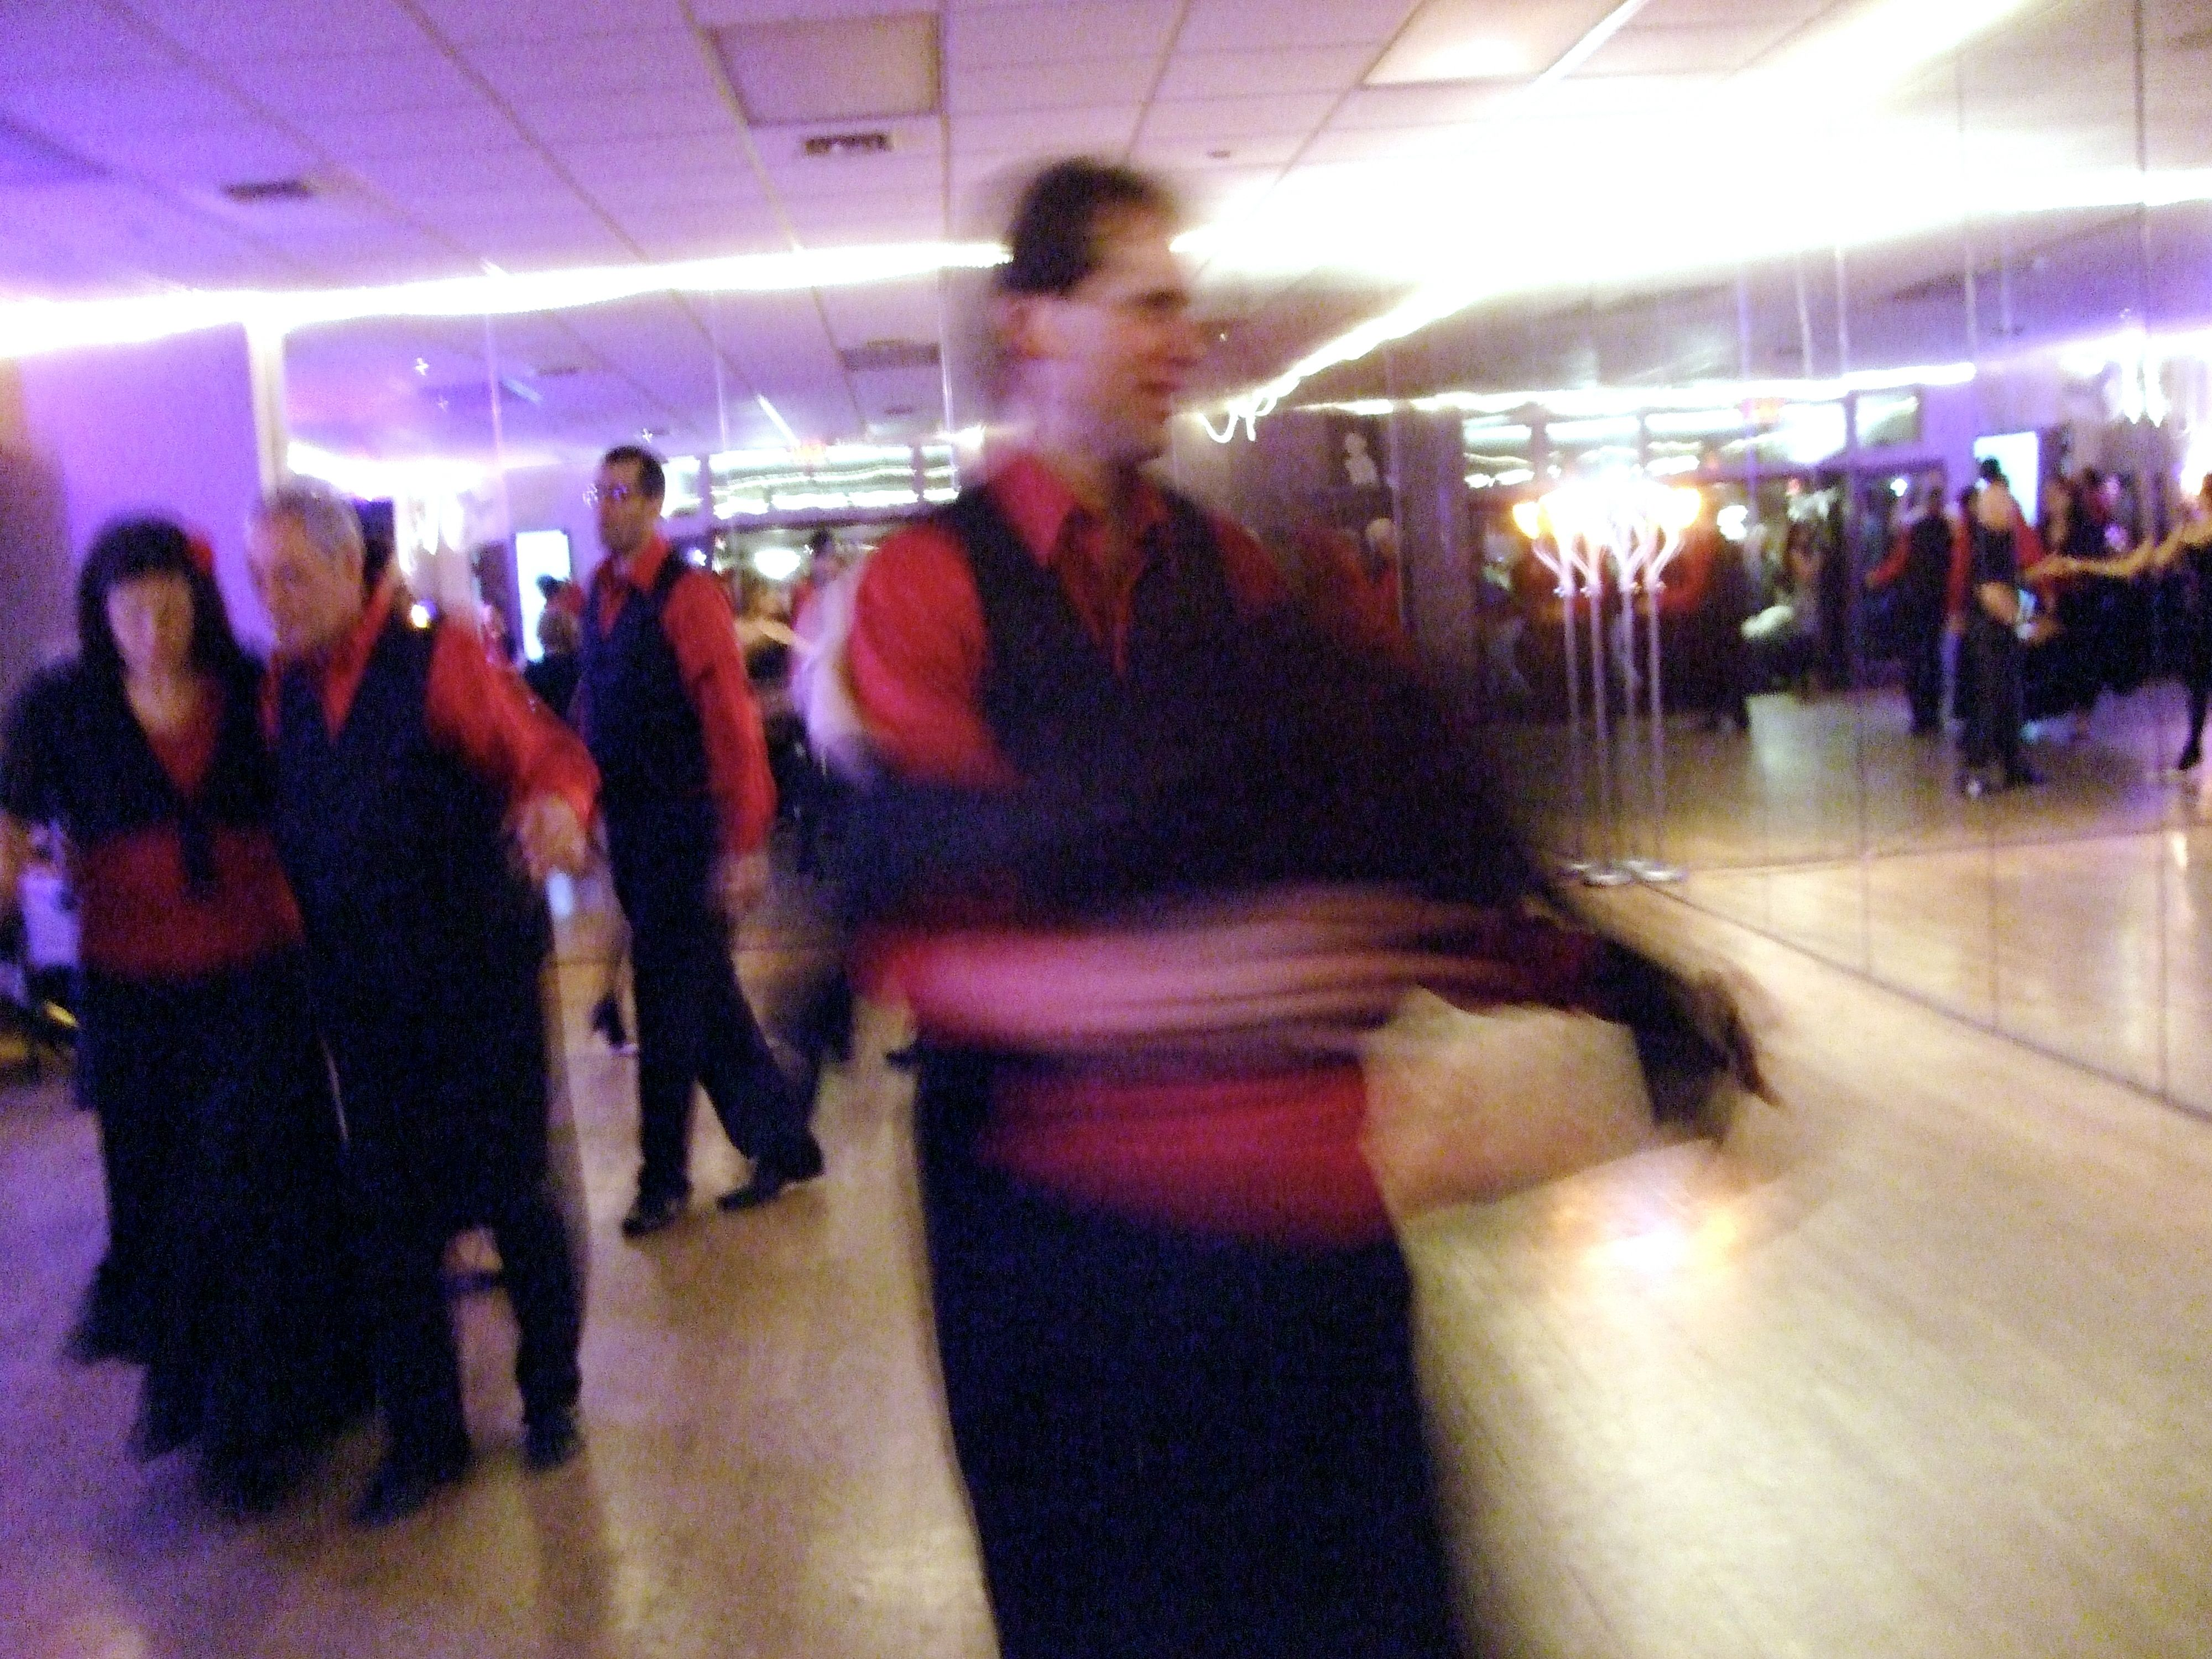 The New York Ballroom Dance Meetup